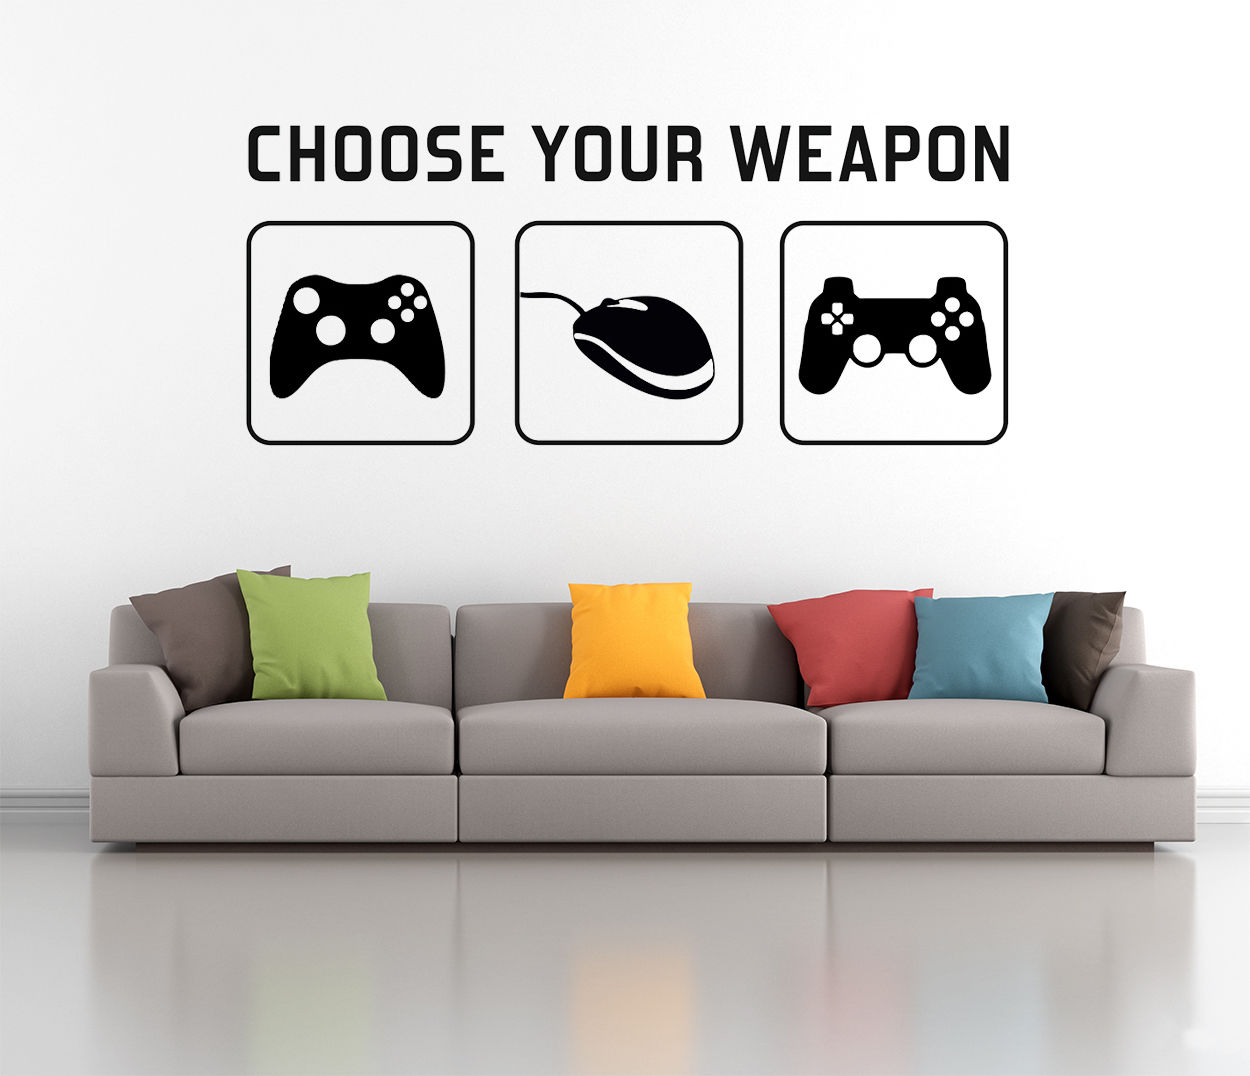 C162 CHOOSE YOUR WEAPON Gaming Wall Decal Sticker   Video Game Xbox  Playstation Mural Home Decor